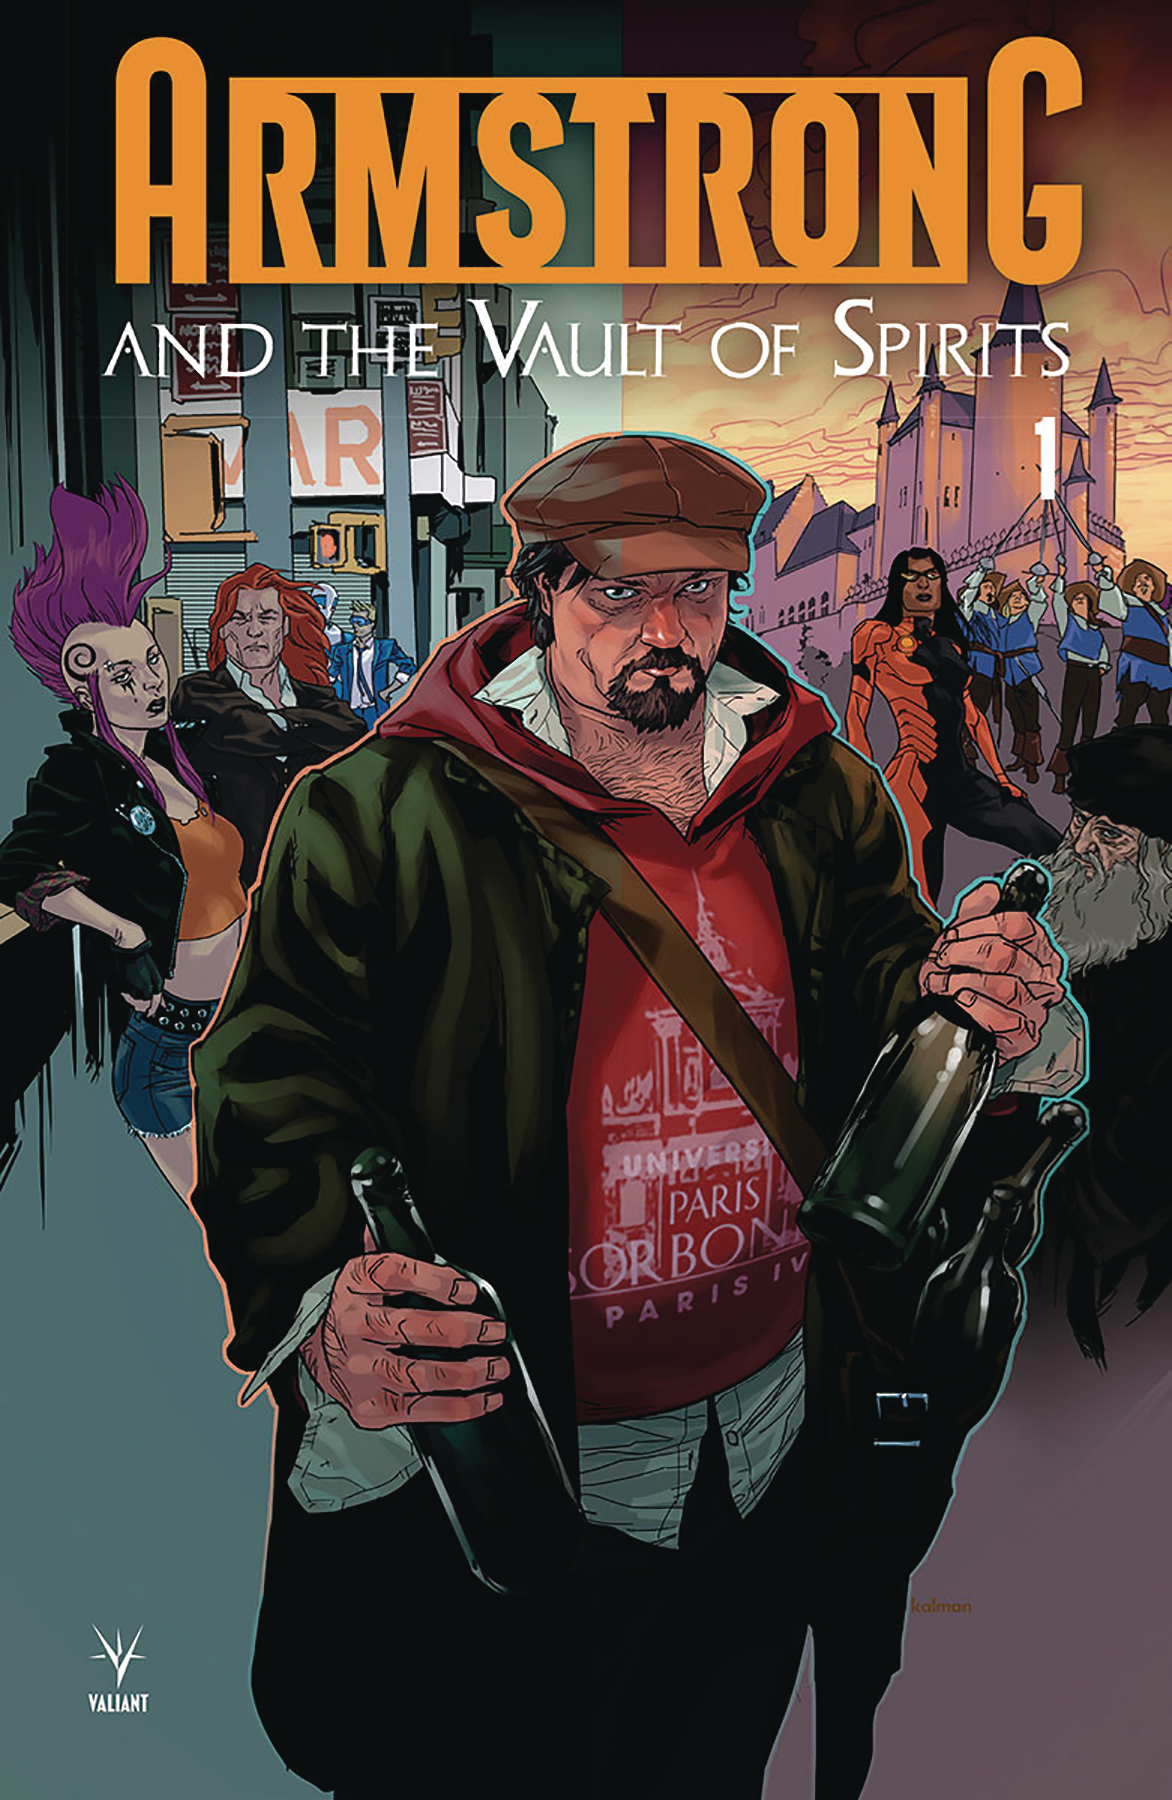 Armstrong and the Vault of Spirit